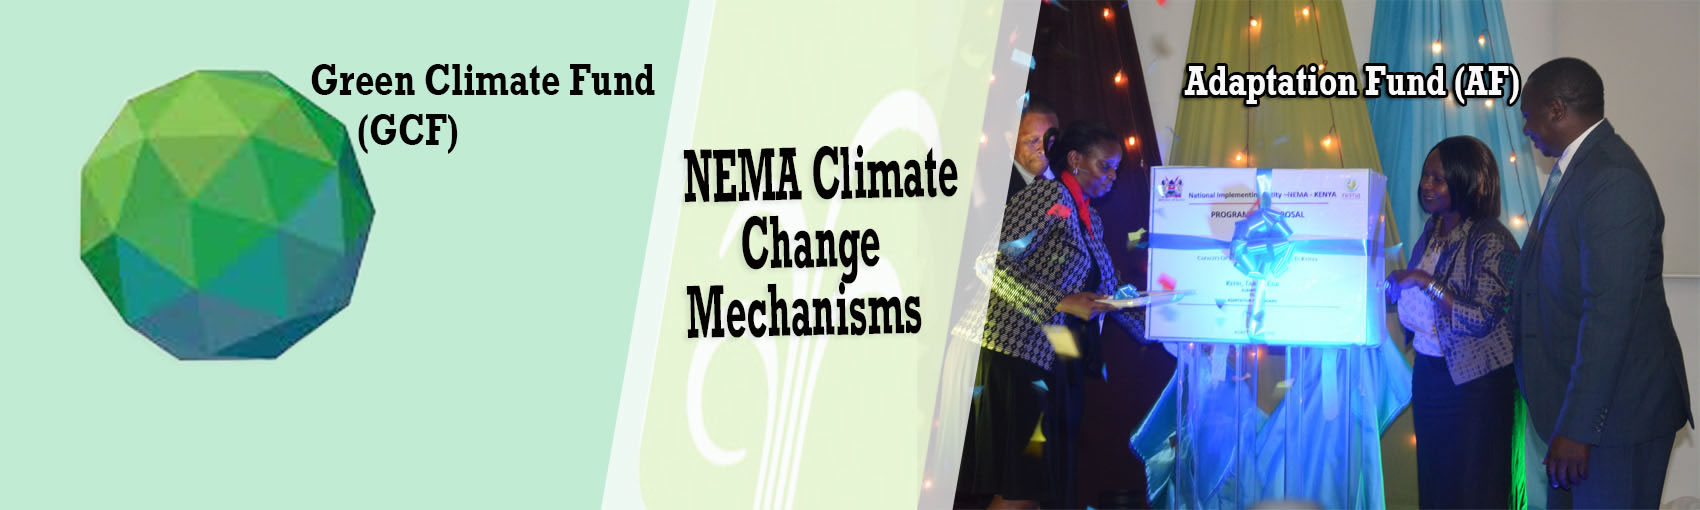 NEMA Climate Change mechanisms